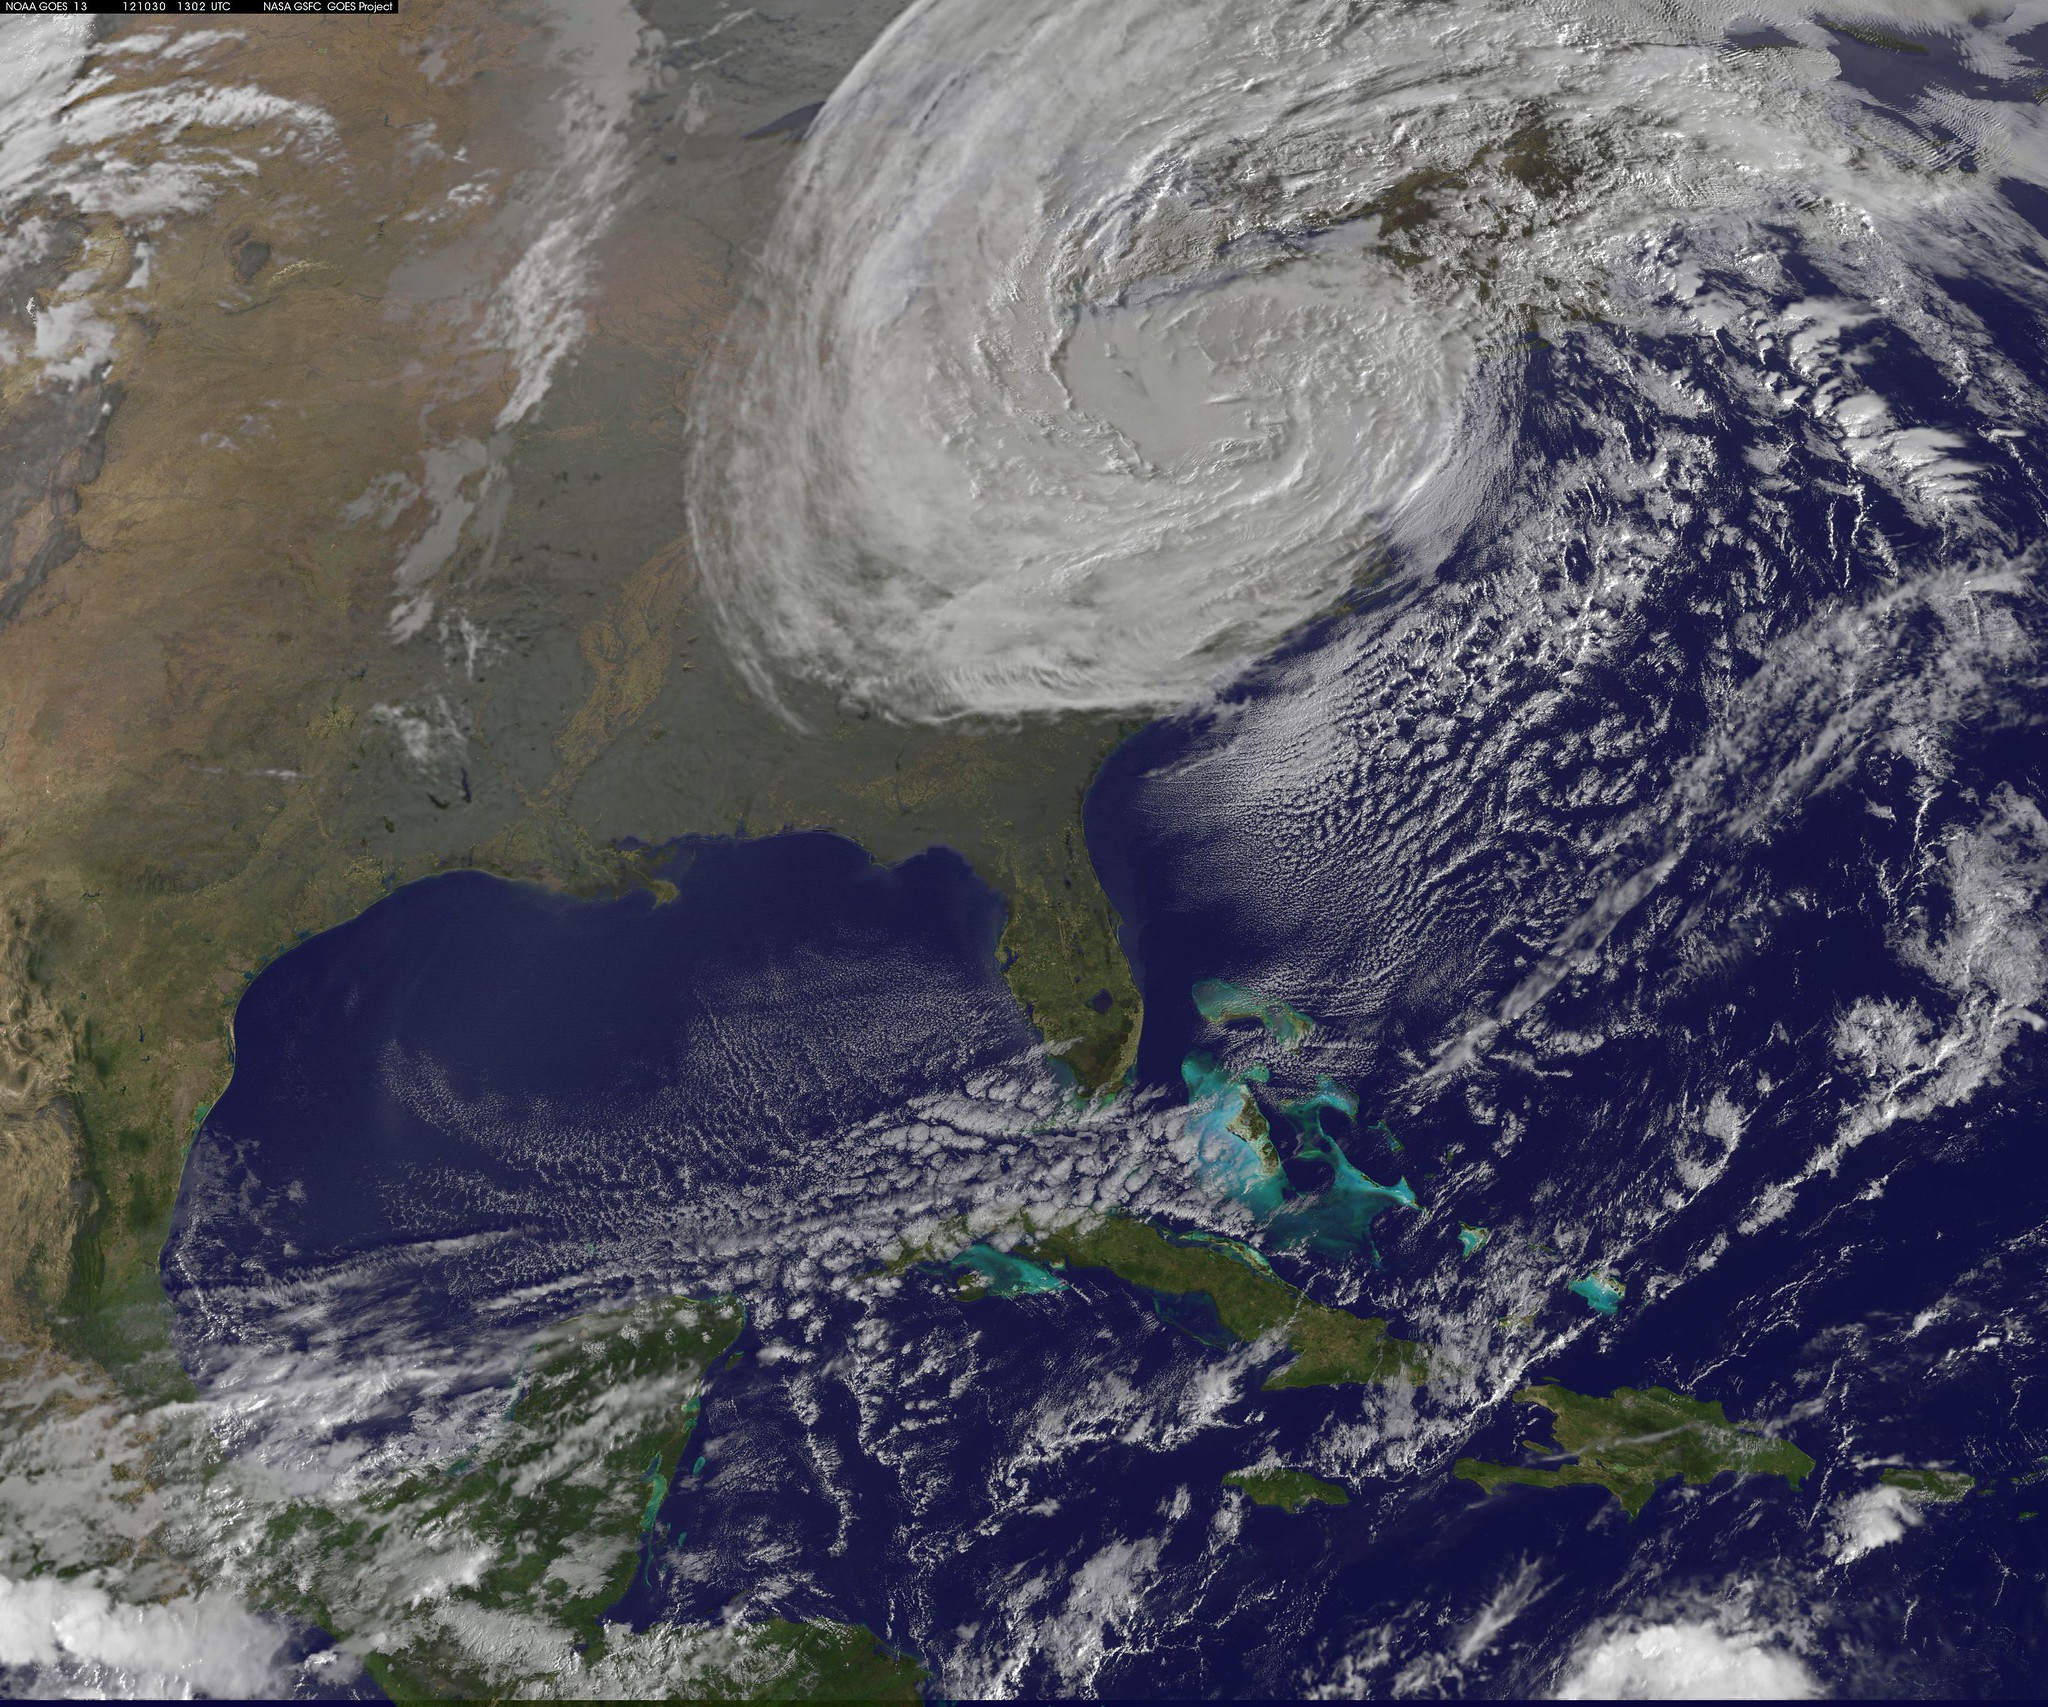 Hurricane Sandy Archives - Bad Astronomy : Bad Astronomy